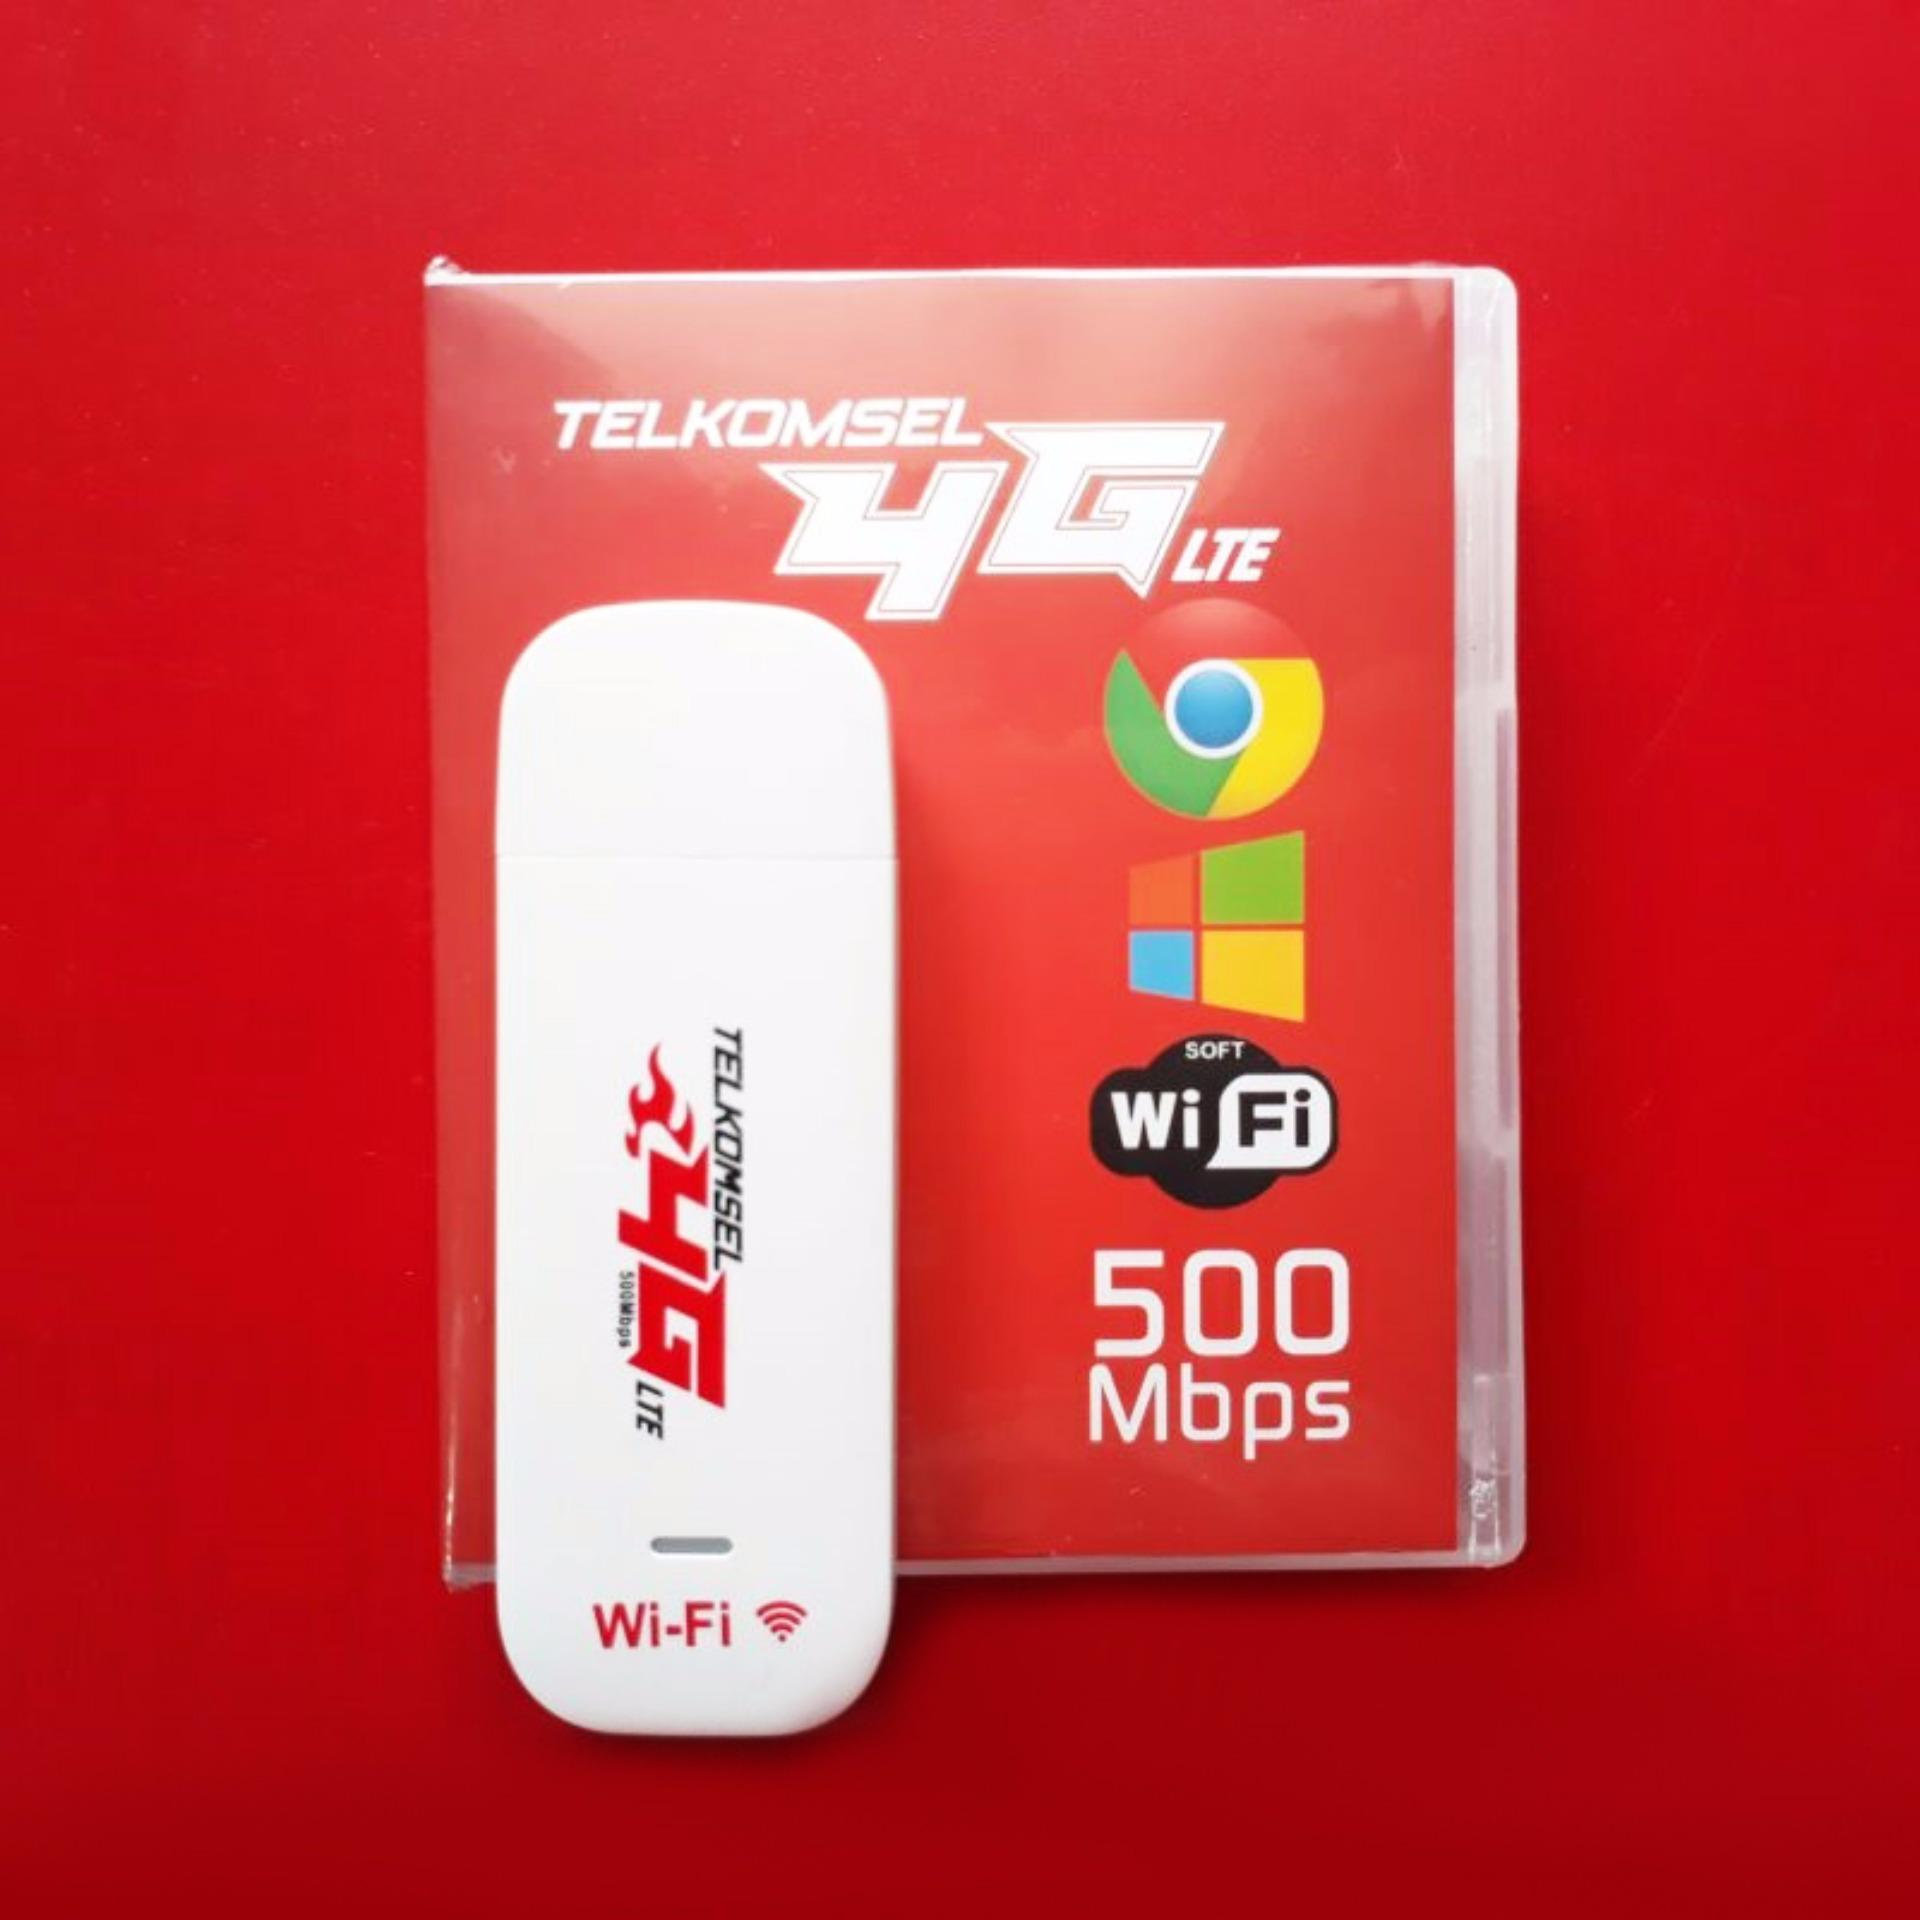 Telkomsel Flash USB Modem 4G LTE 500 Mbps Wifi Hotspot, Unlock All GSM, Auto APN, MicroSD Card Slot